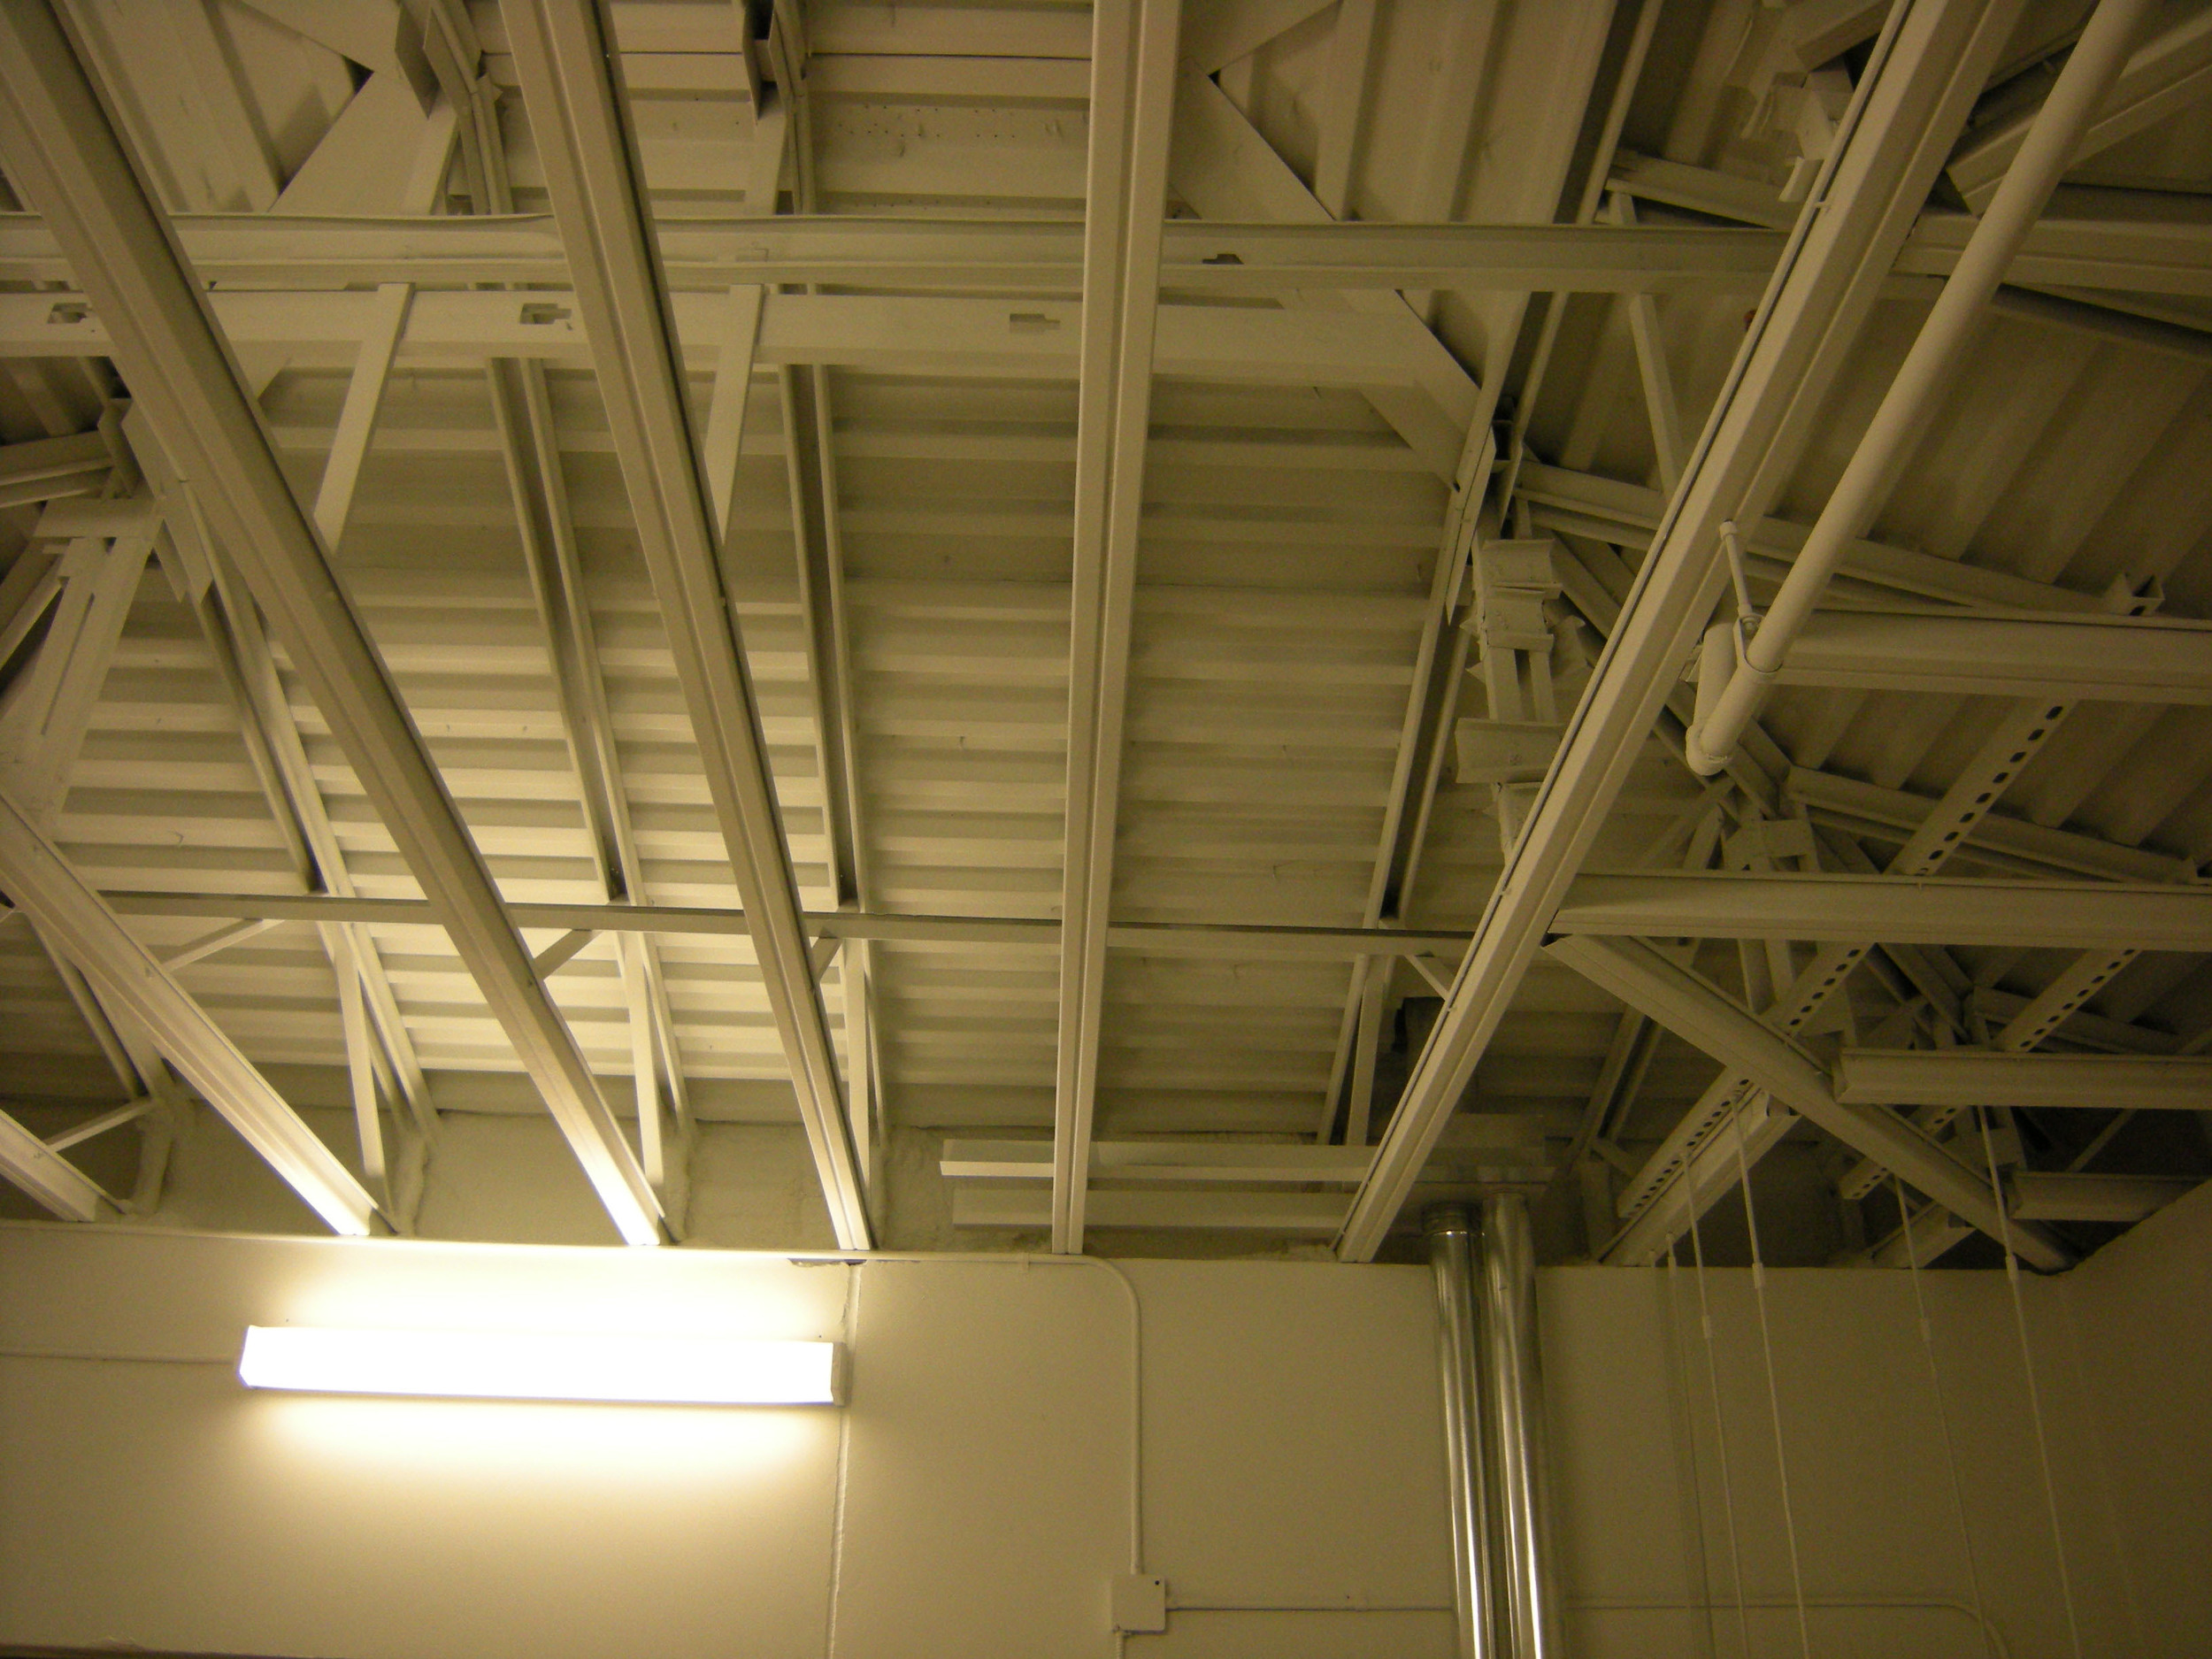 Inside ceiling of the garage